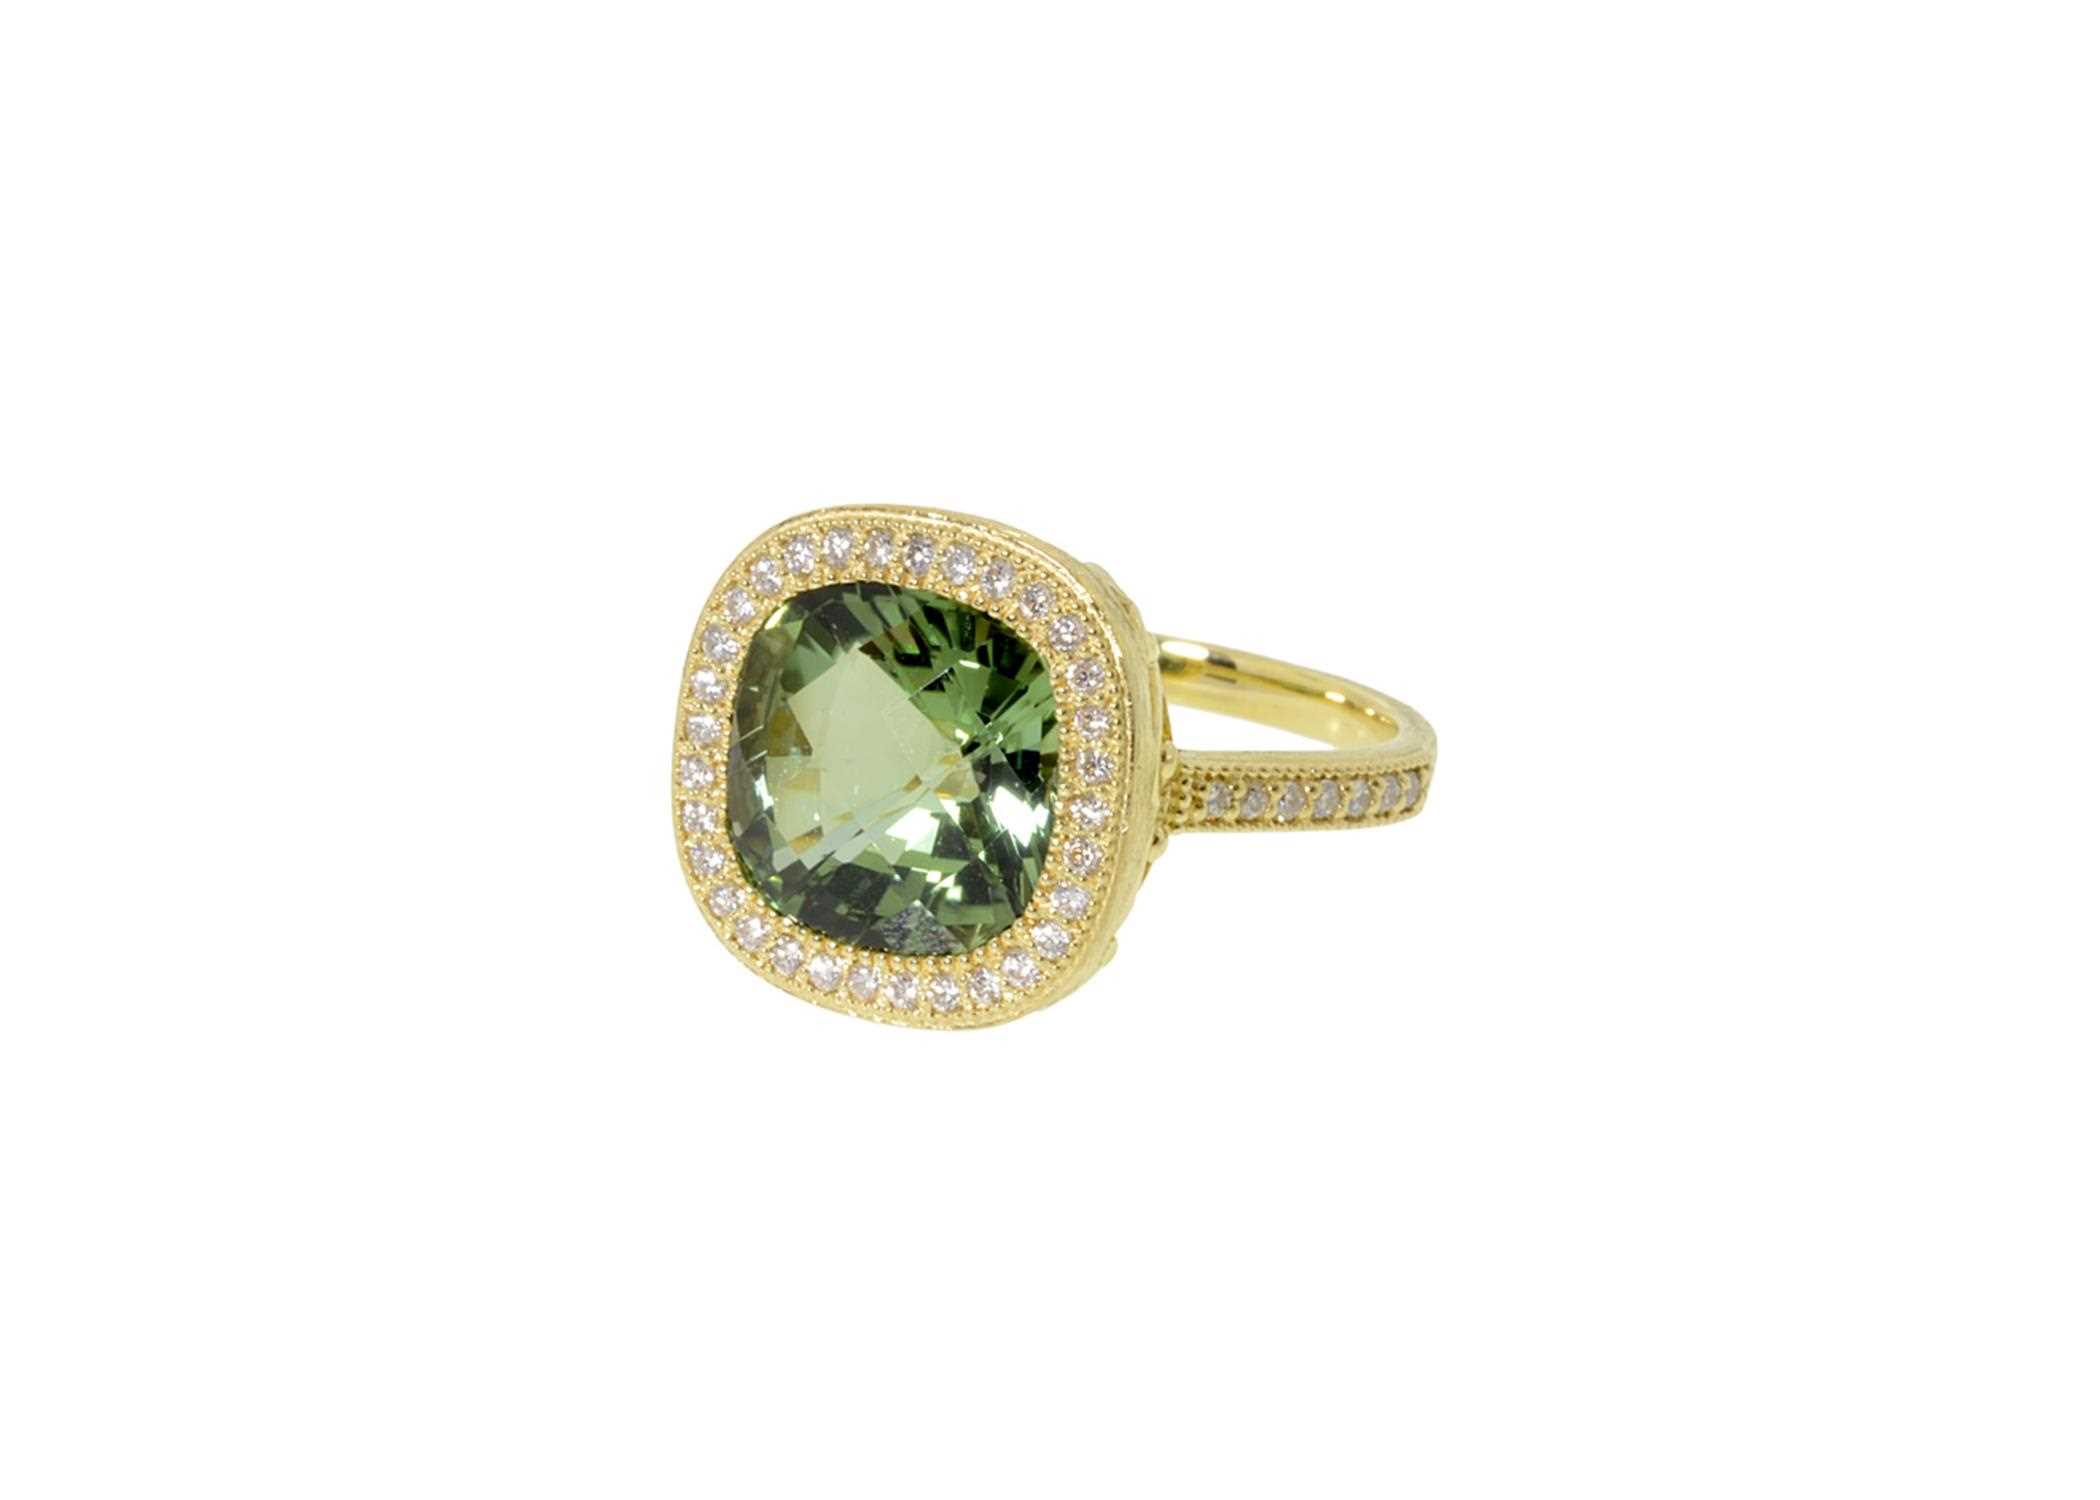 band rings size shank estate is gold in and vintage yellow weighs approx stone a oval img measures gemstone tourmaline this green three ring grams diamond the